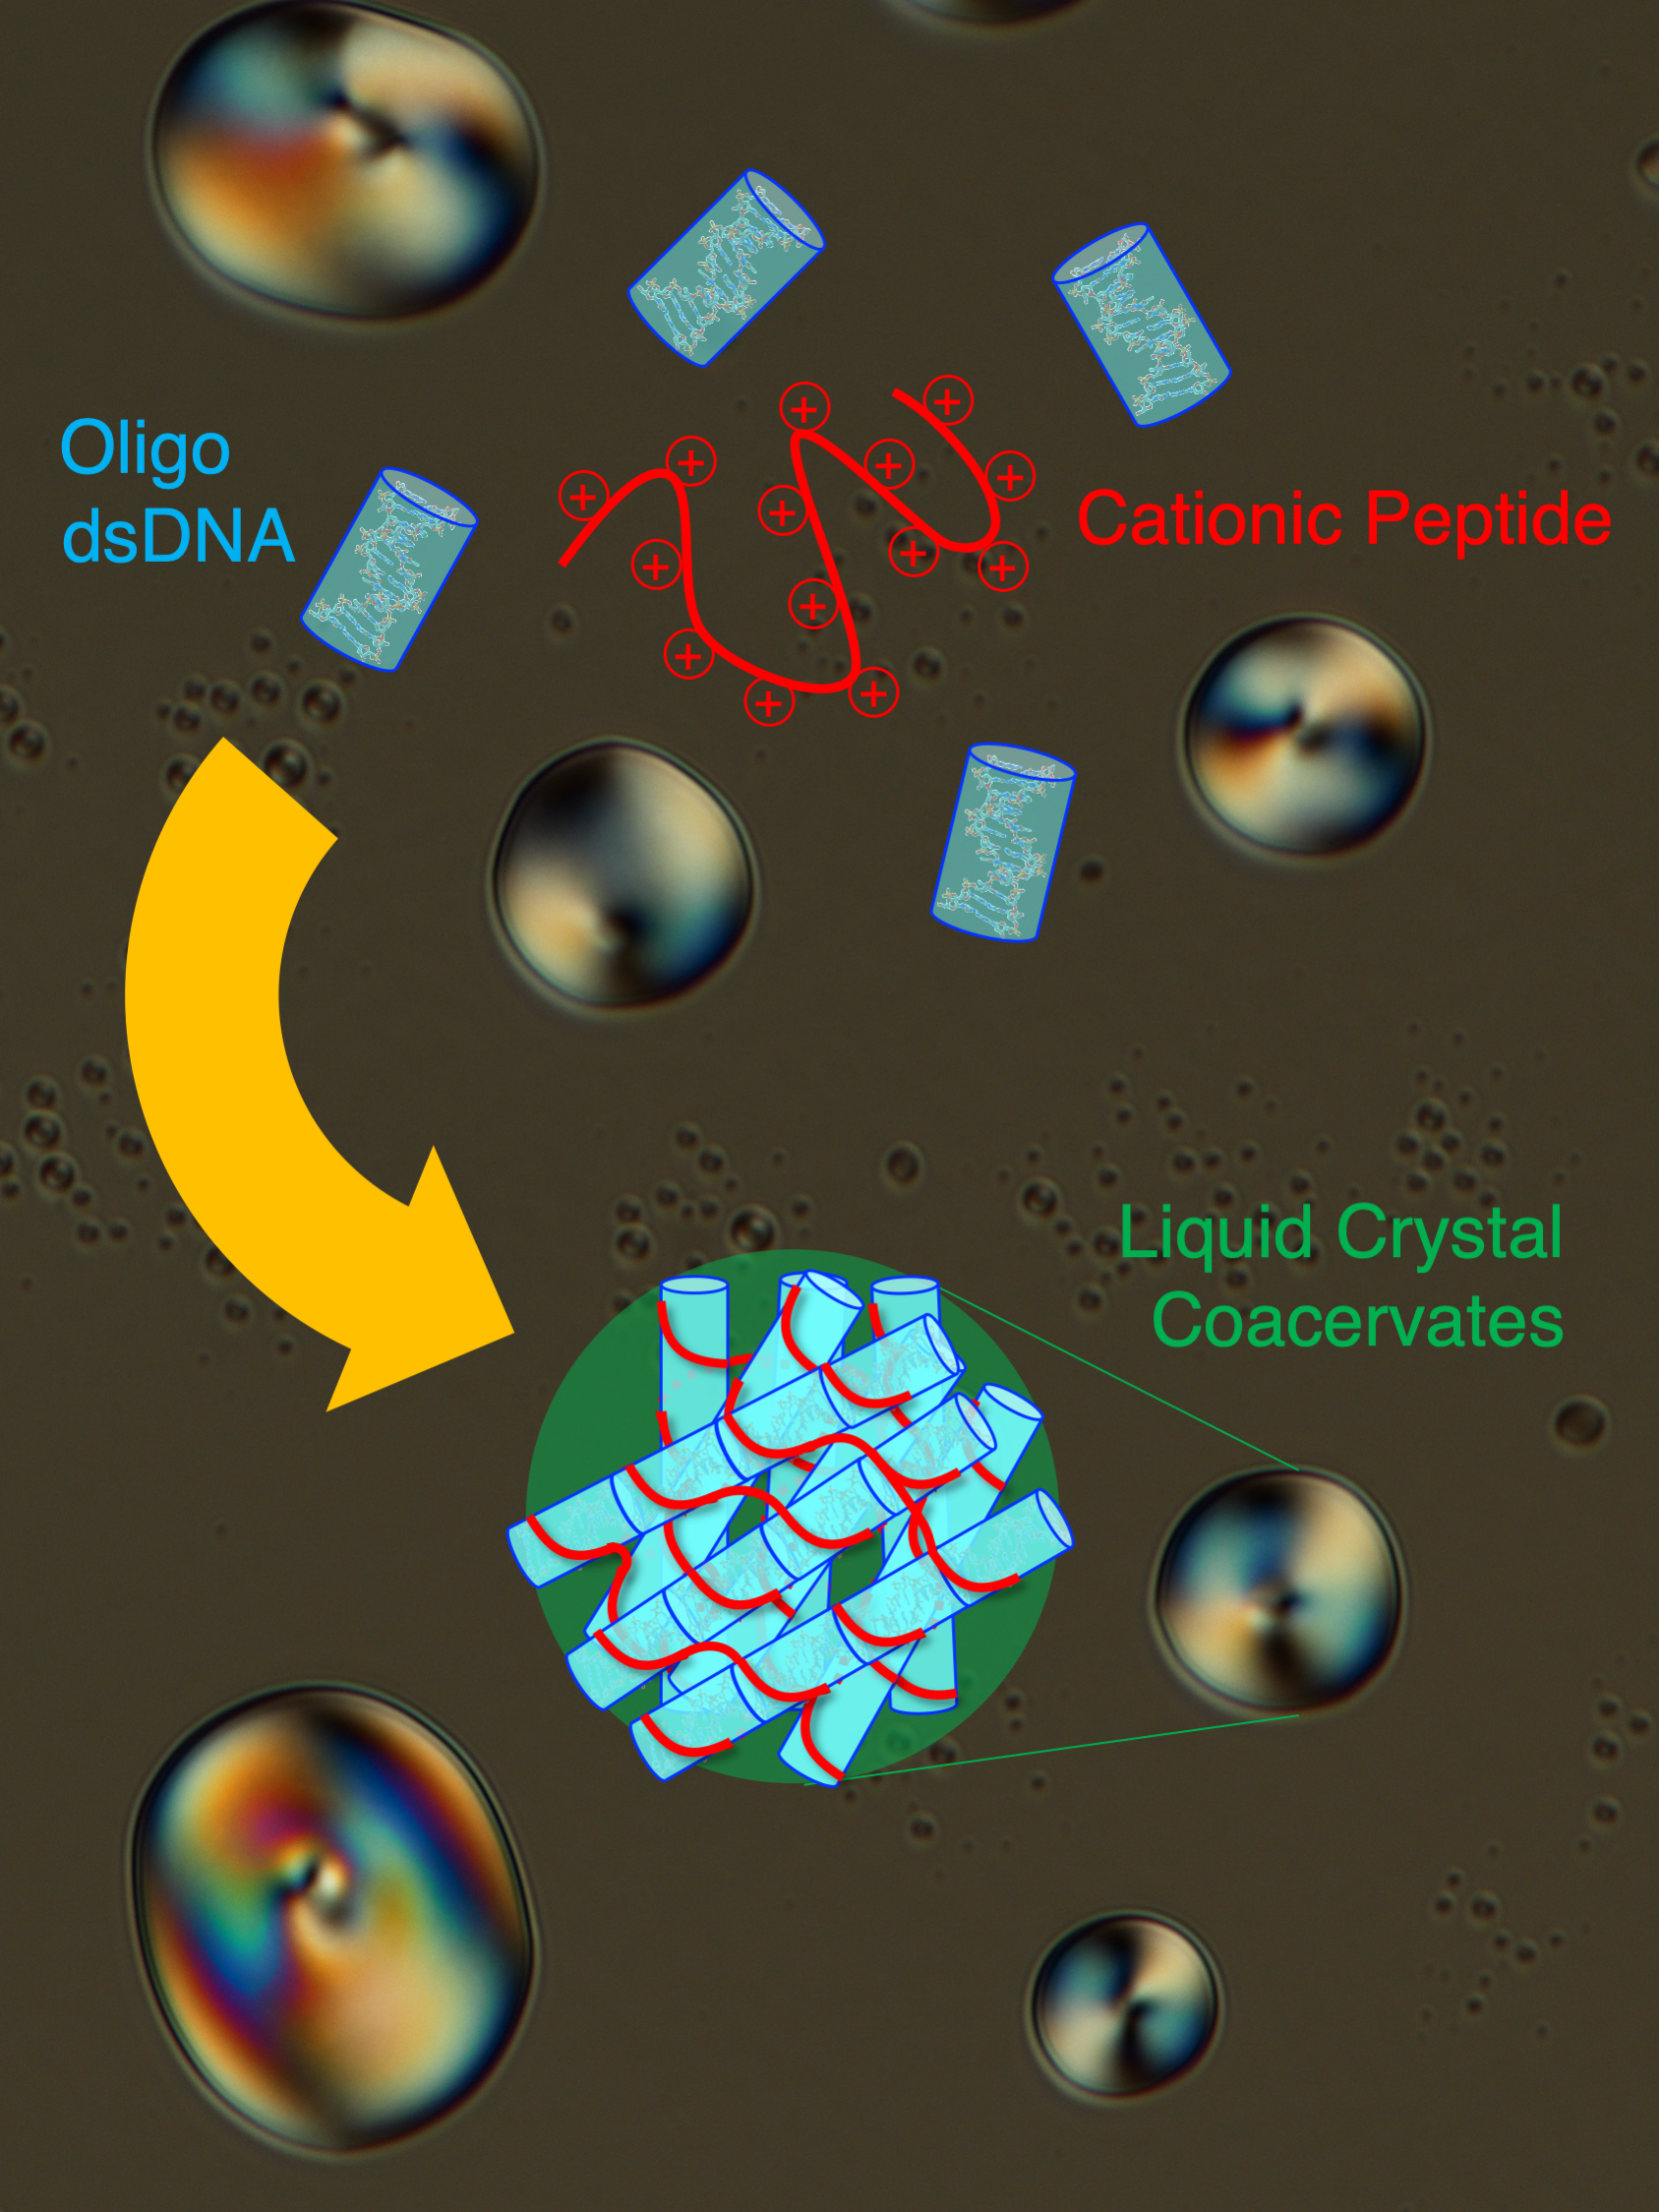 Schematic of the Liquid Crystal Coacervate System